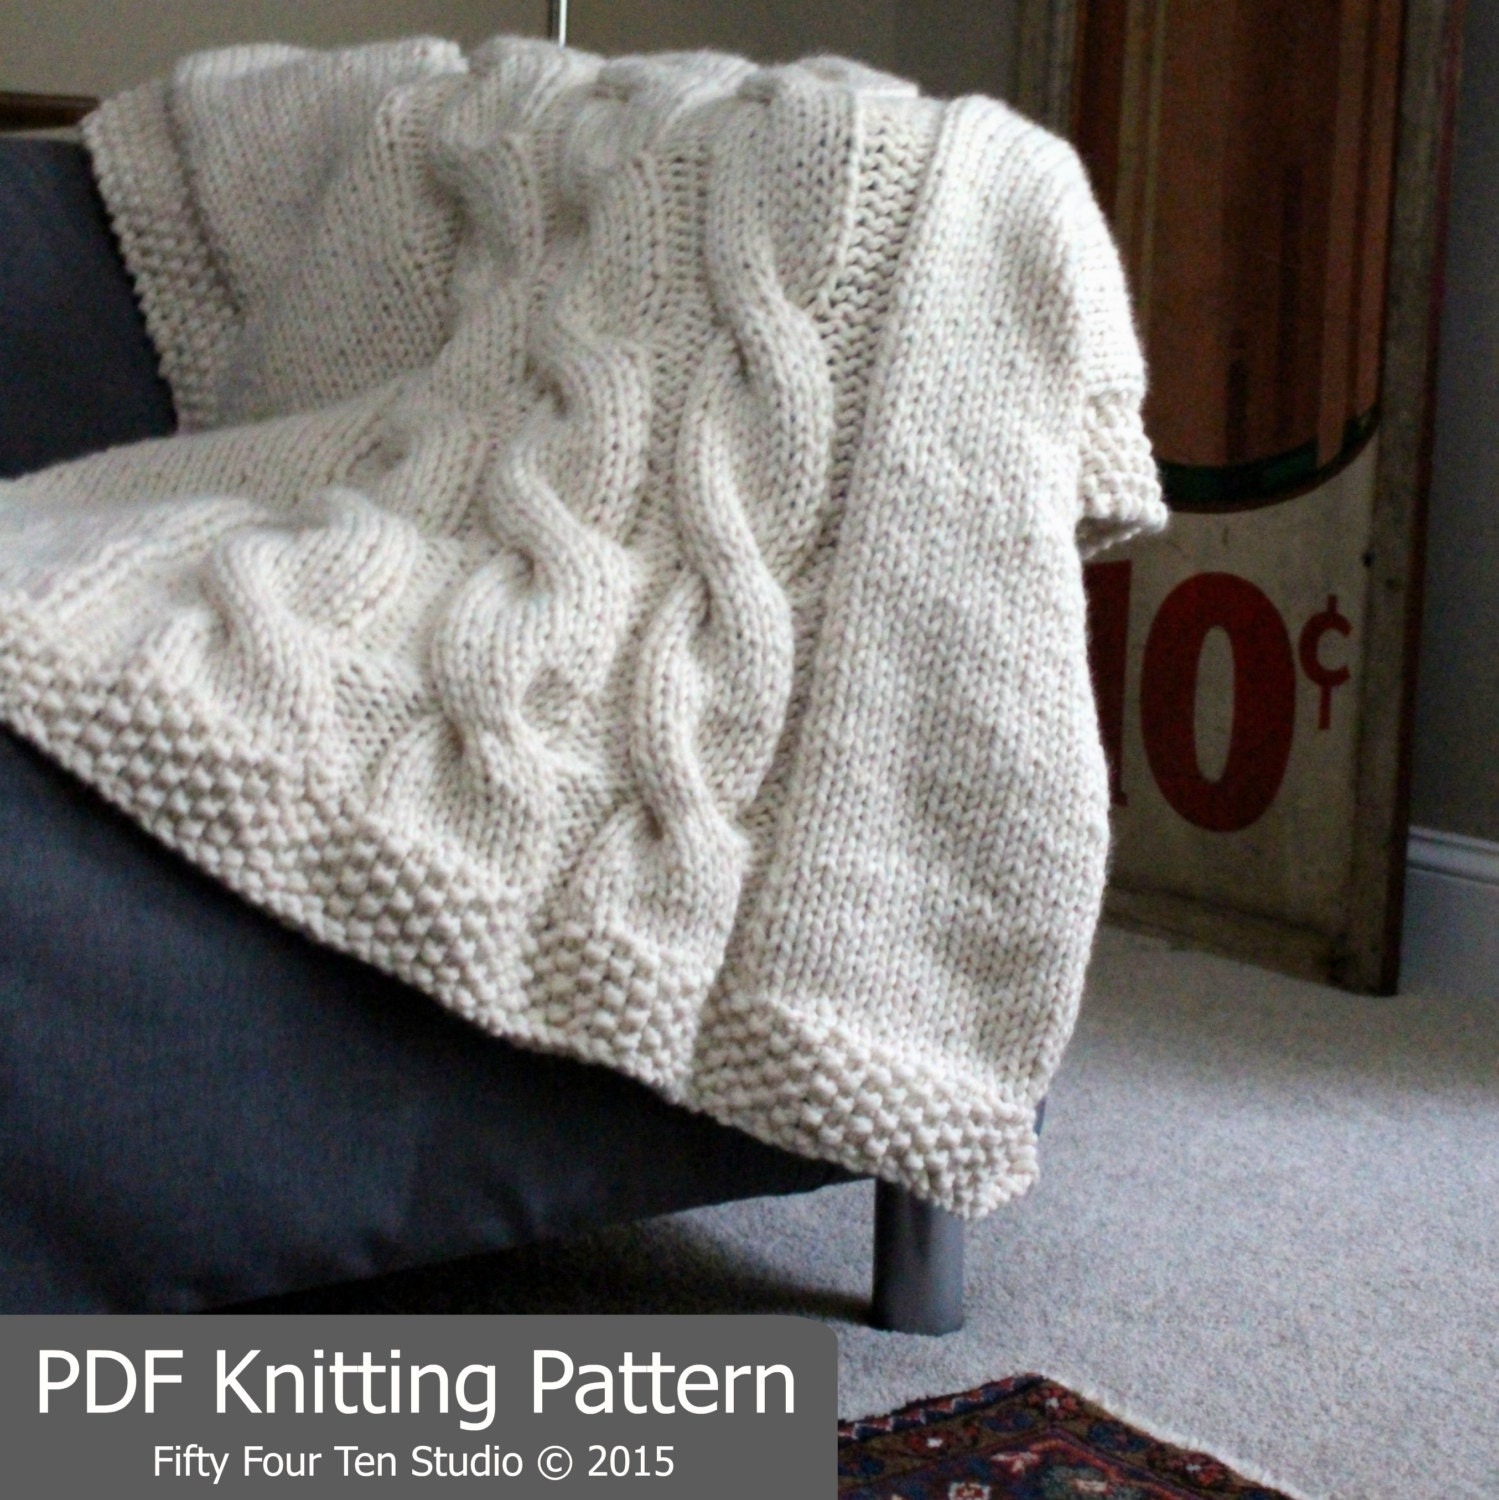 KNITTING PATTERN / Blanket / Throw / Cable Knit / Super Bulky